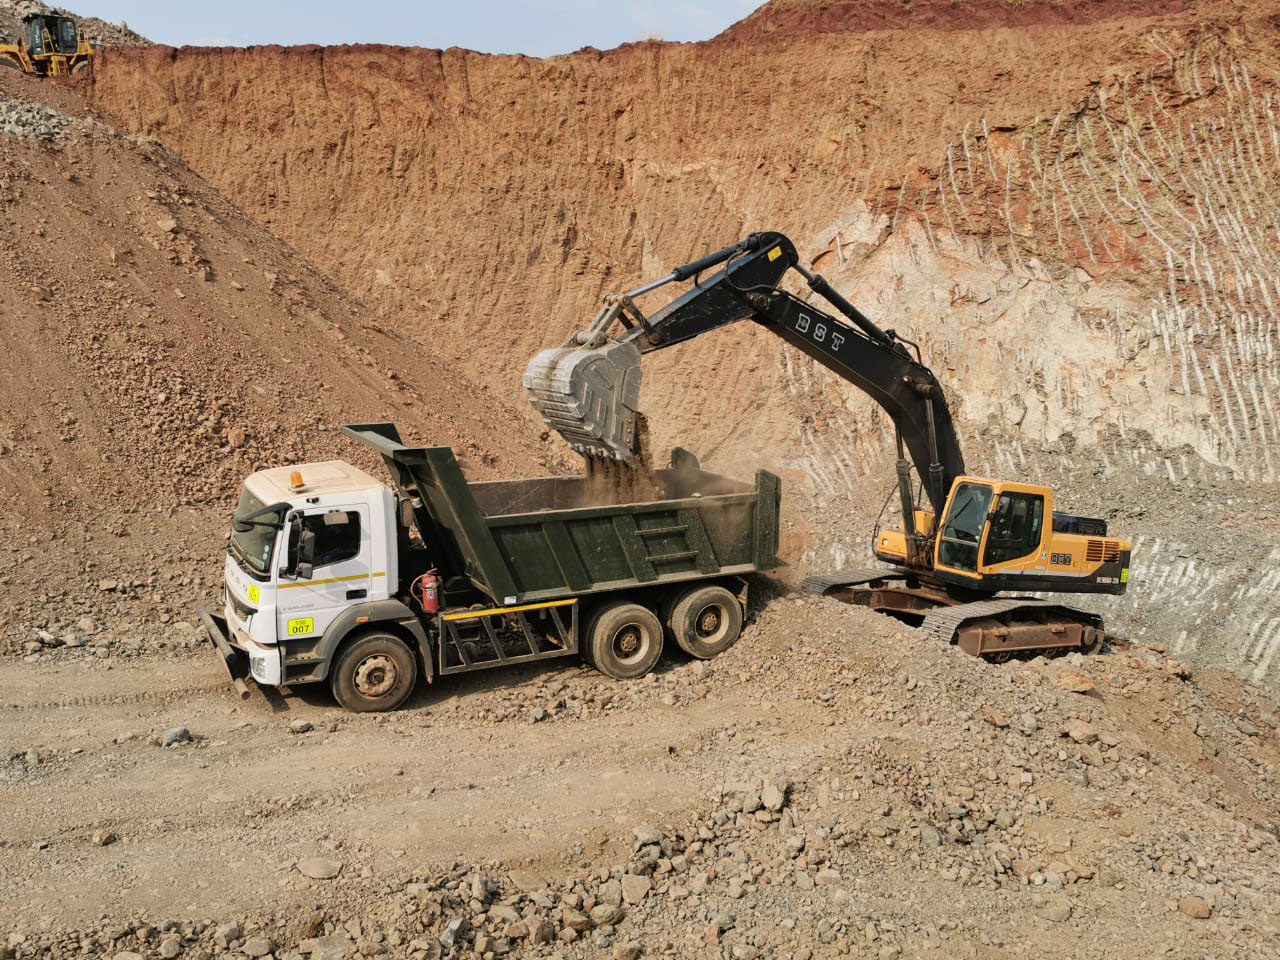 BST Plant Hire invests in a new 38 ton Hyundai tracked excavator